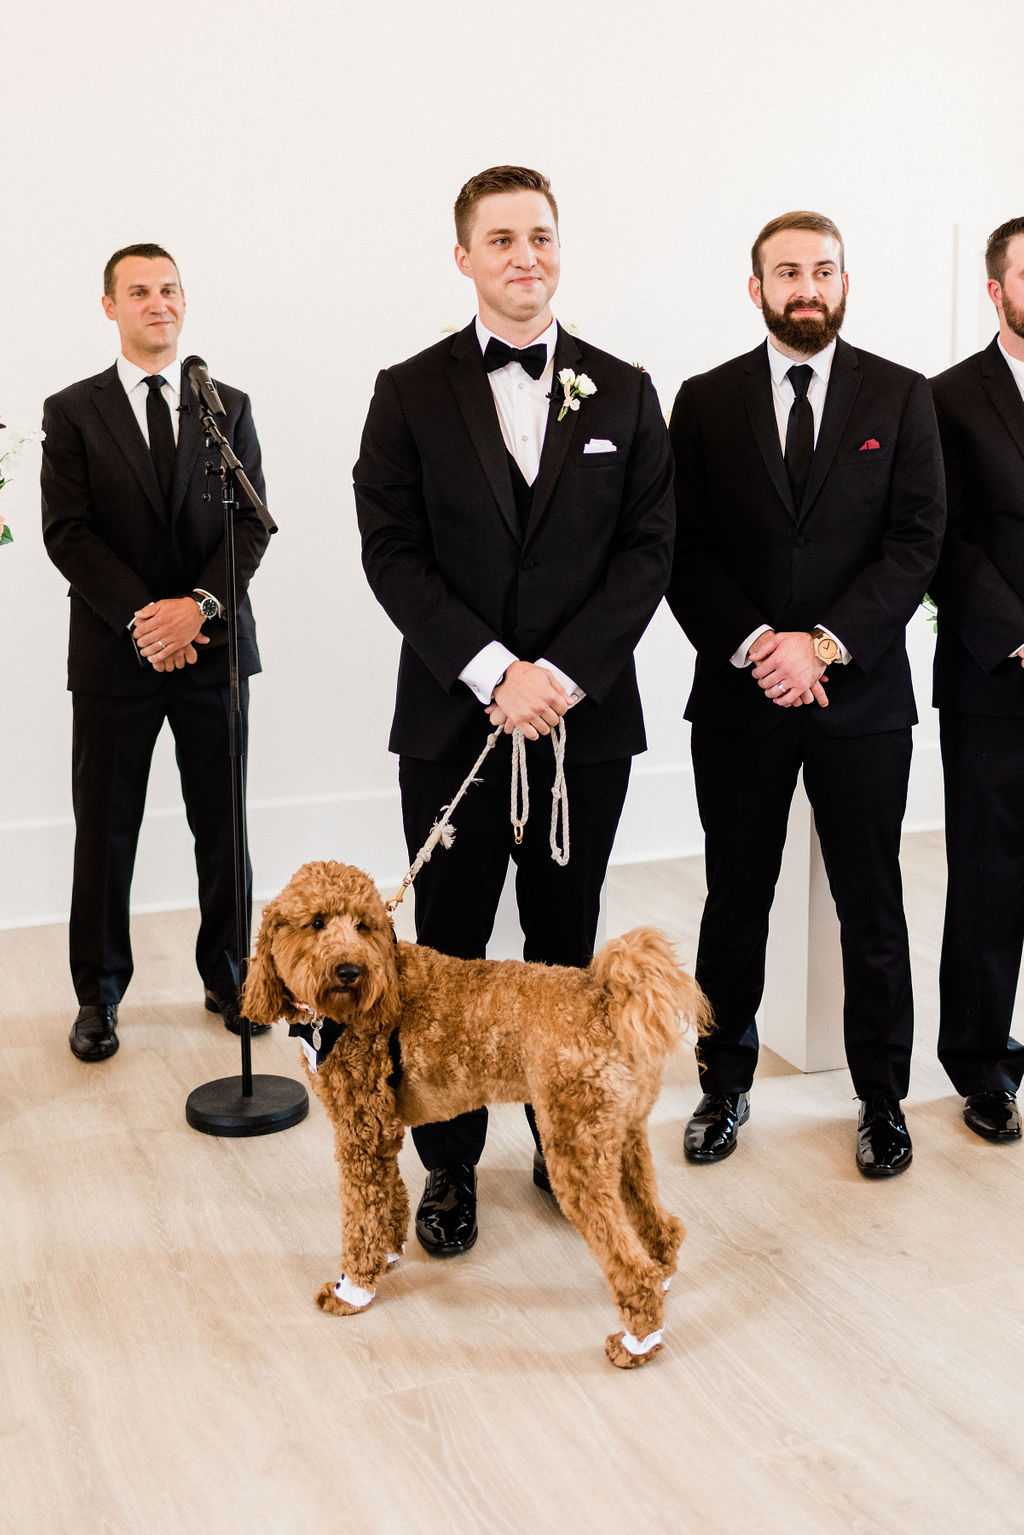 A groom smiling with his dog